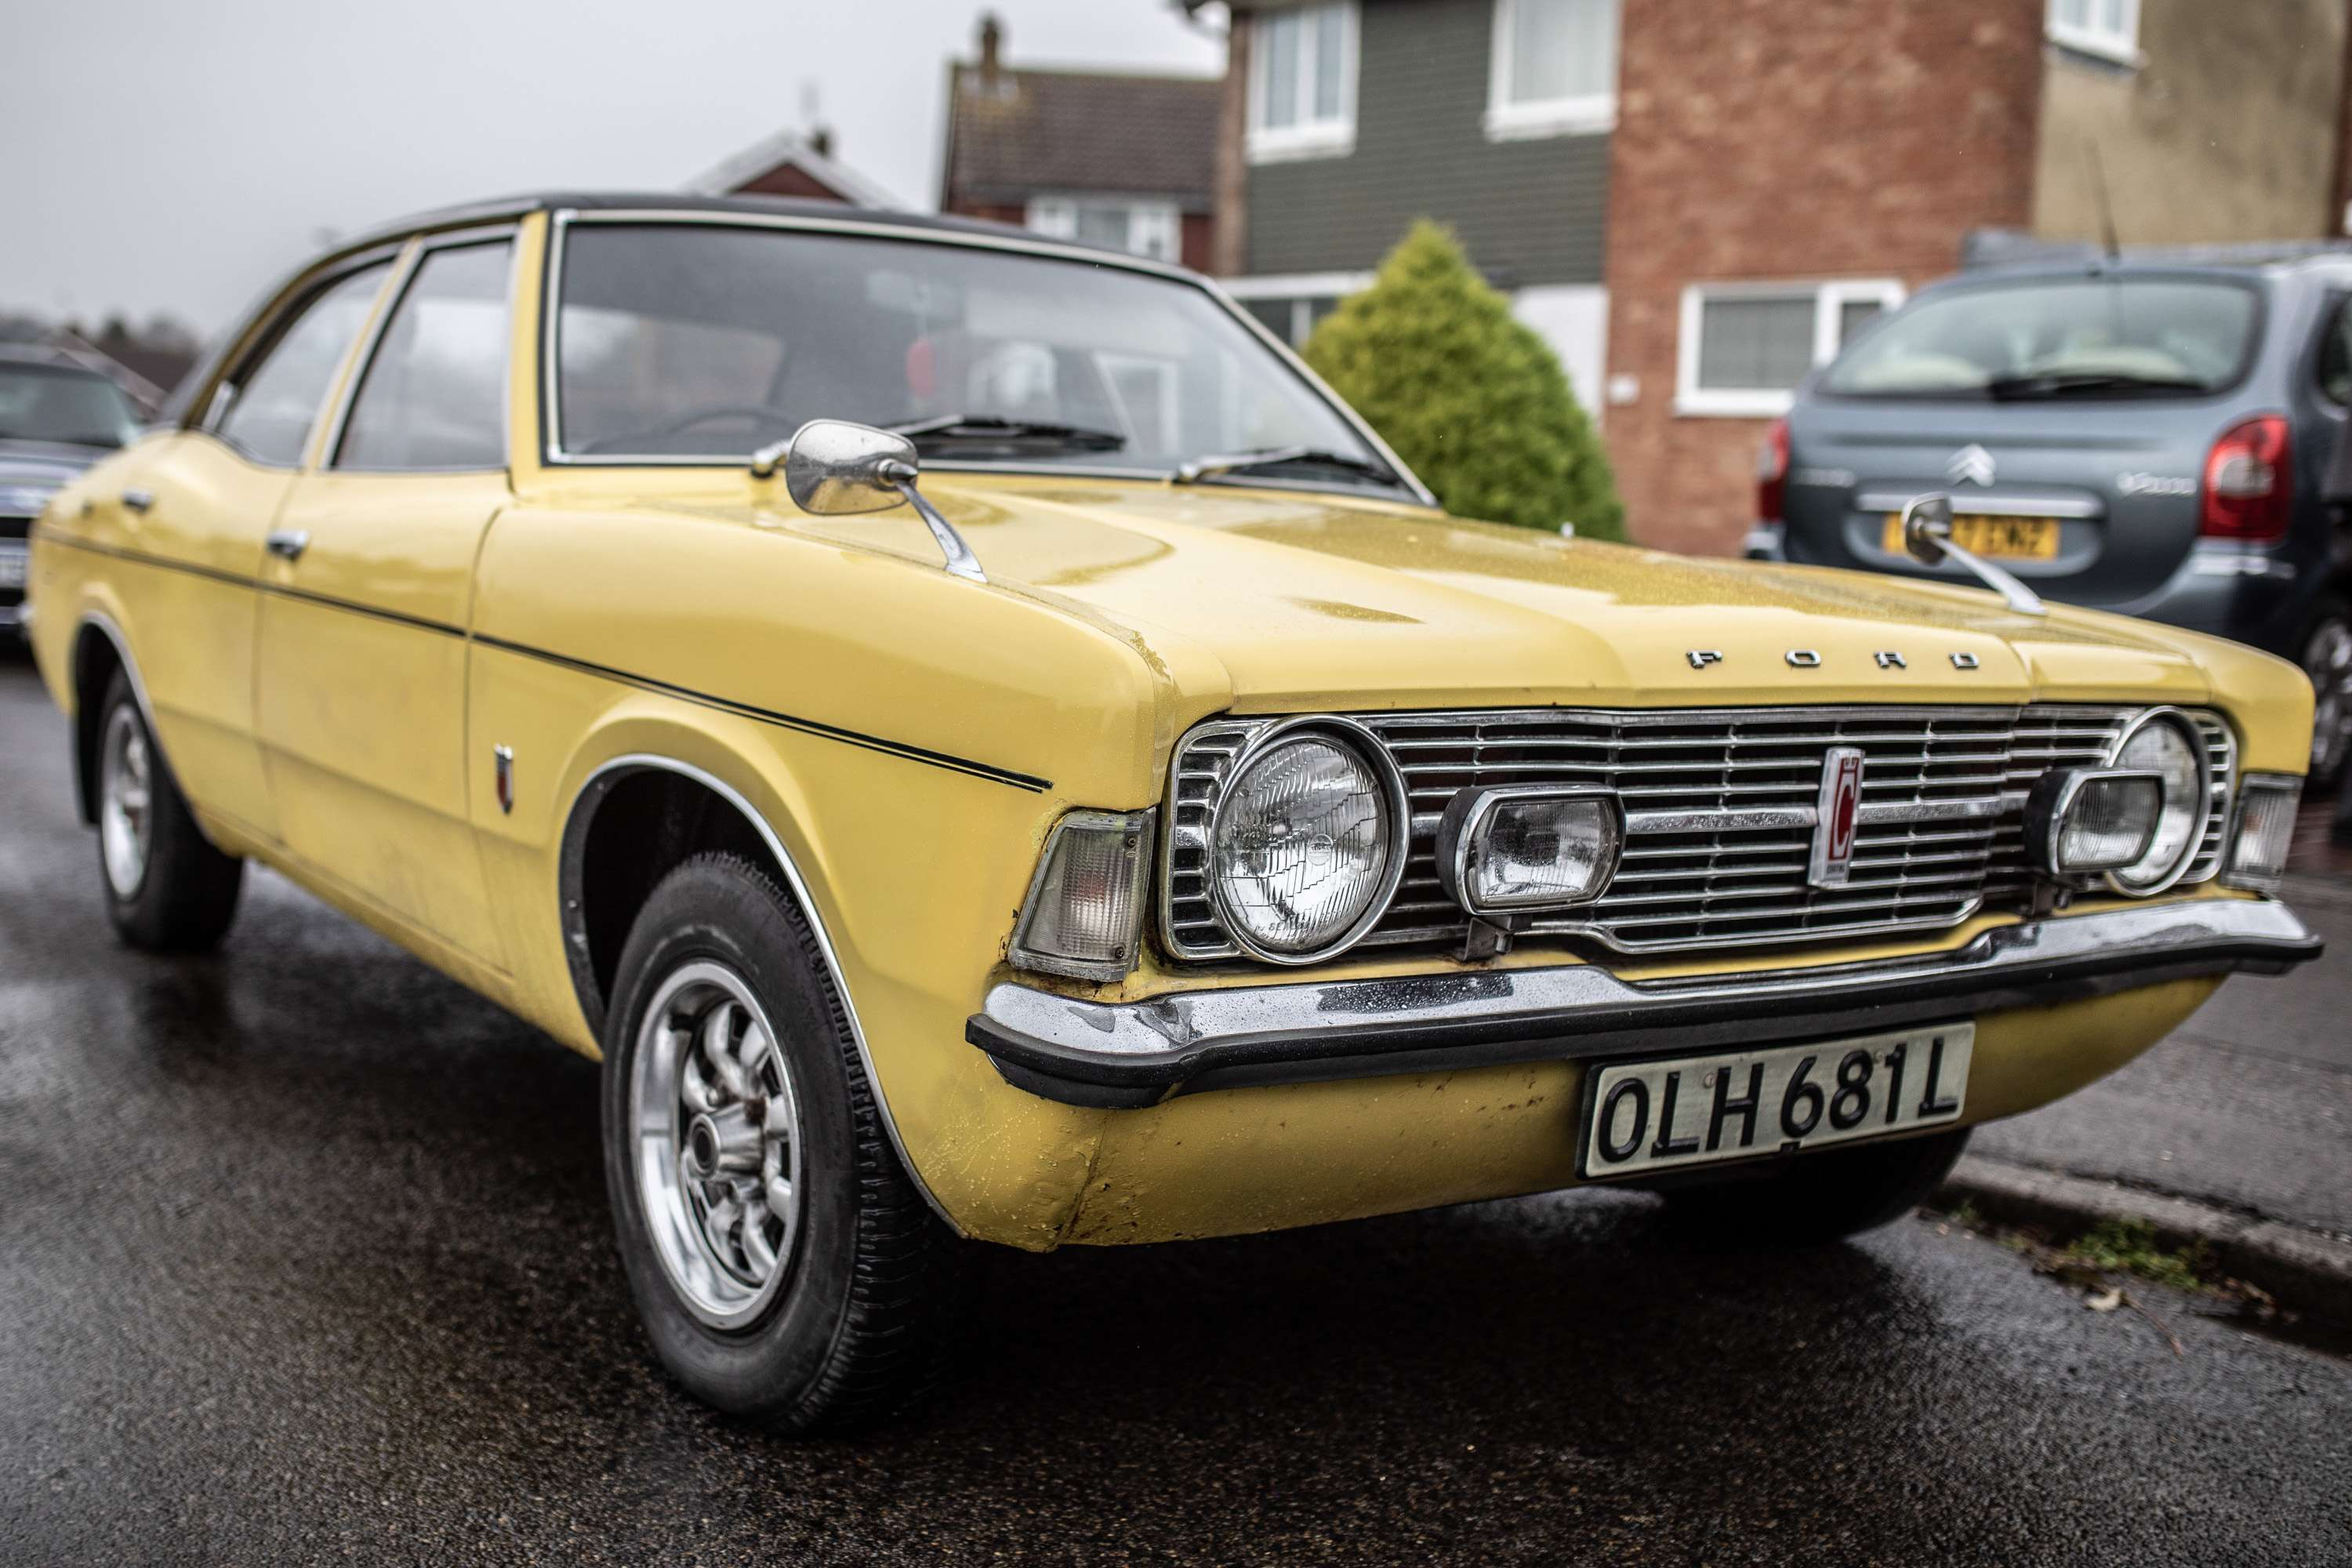 A wedding photo of a yellow ford cortina wedding car. Taken in Chichester, Sussex